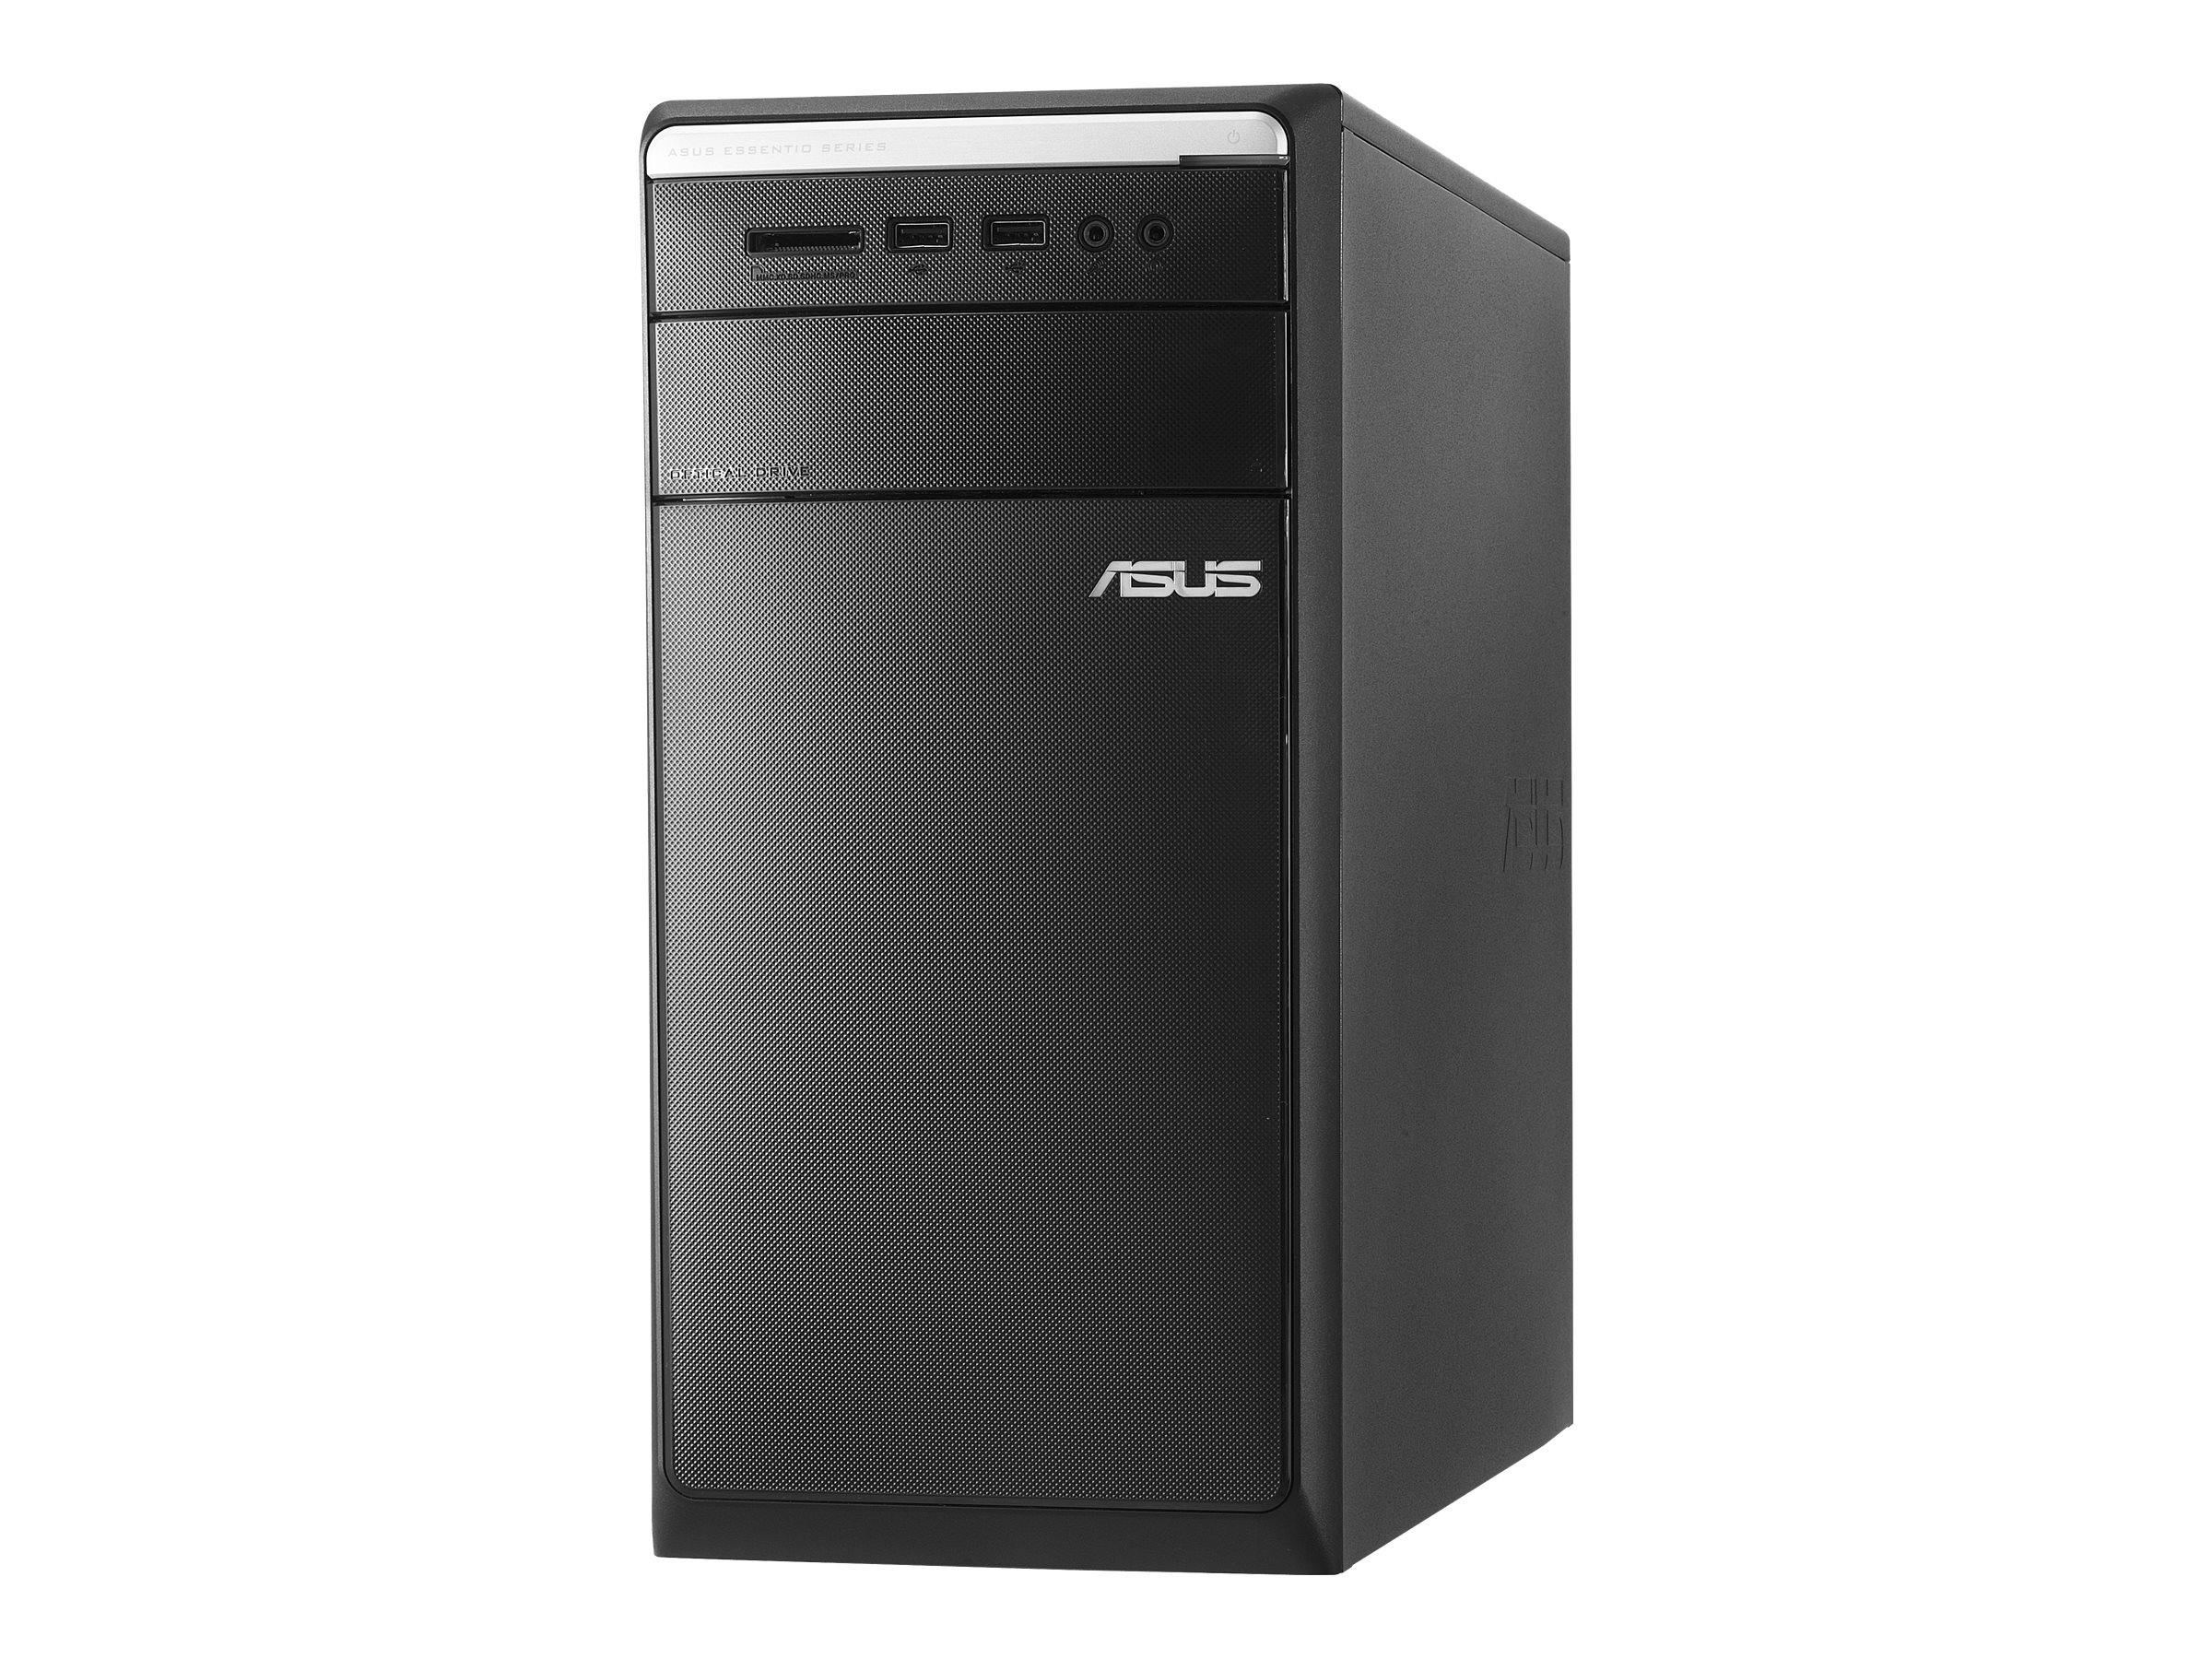 Asus Desktop PC A6-6400K W8